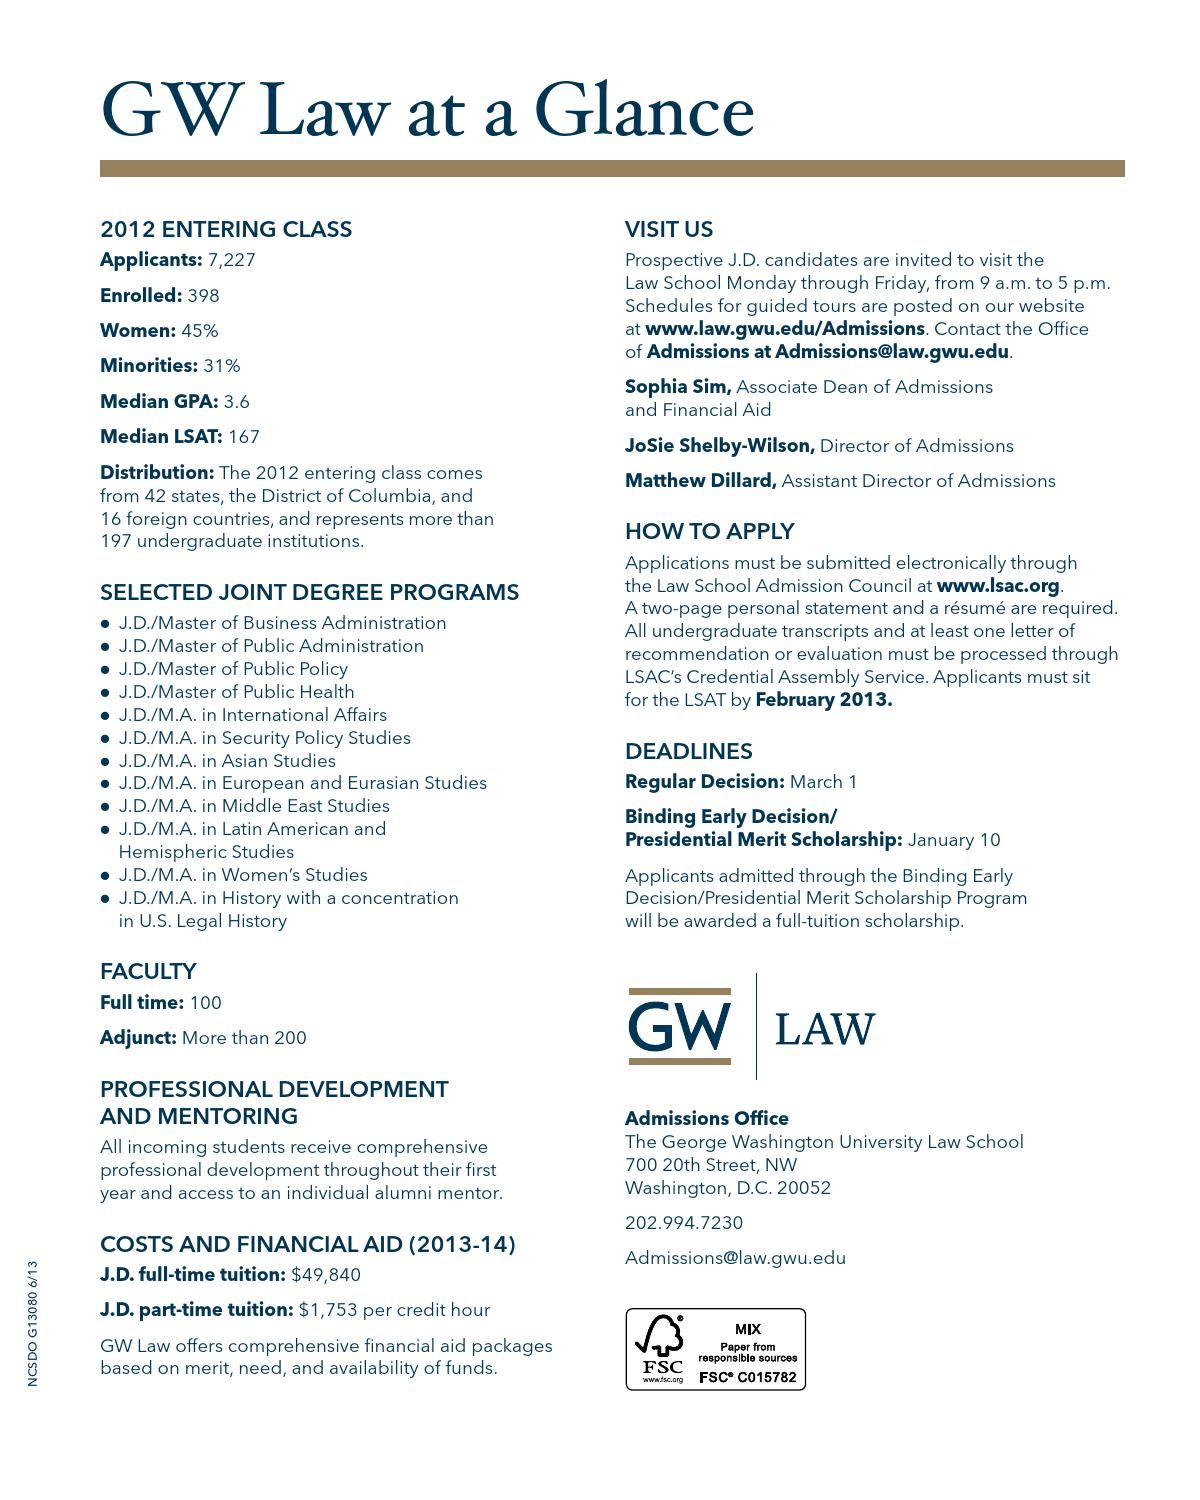 Jd Viewbook 2013 2014 By The George Washington University Law School